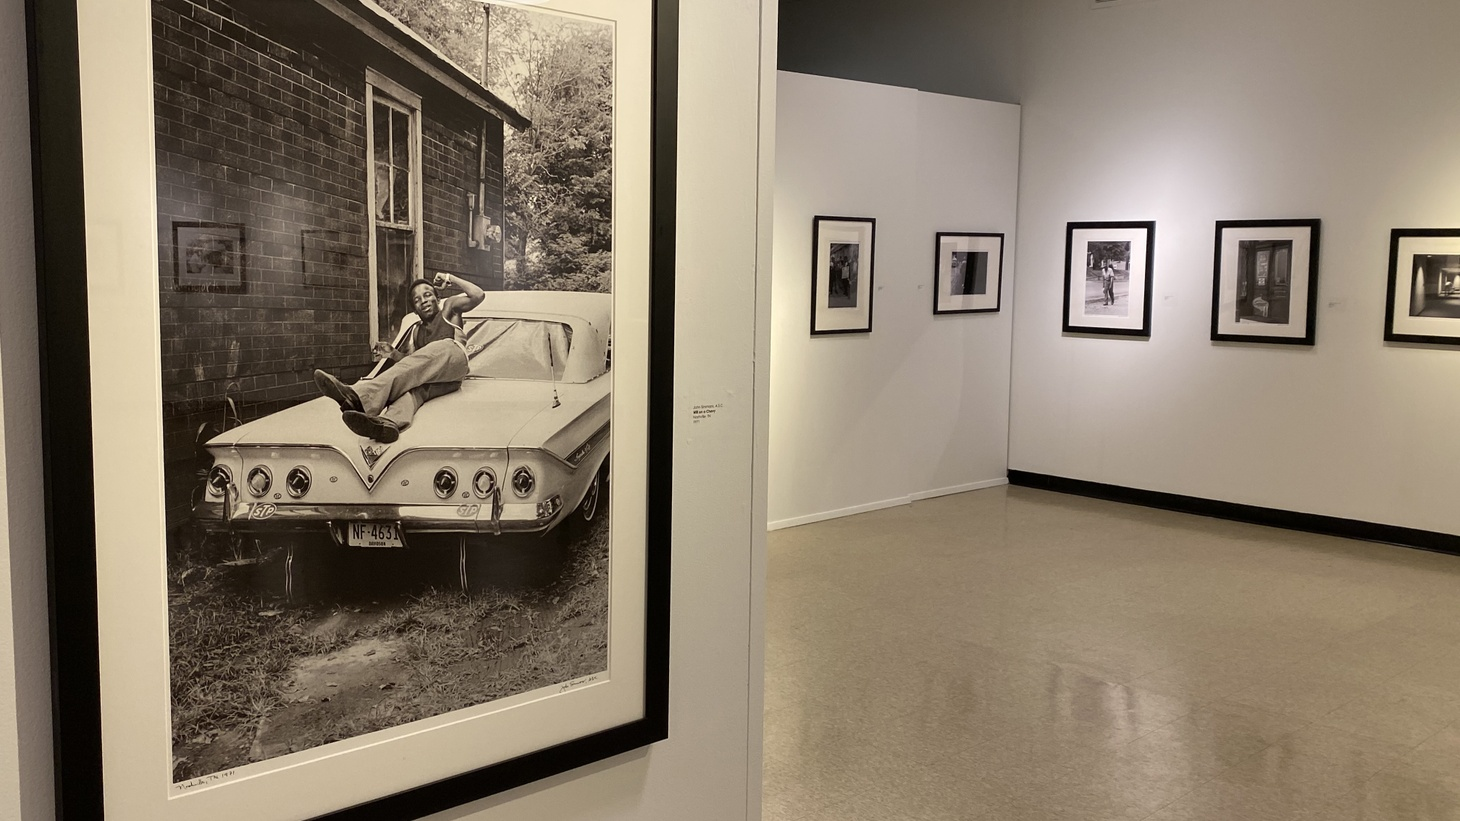 """The Museum of African American Art in Baldwin Hills hosted an exhibit called """"No Crystal Stair: The Photography of John Simmons, ASC"""" when they had to shut down in March 2020."""